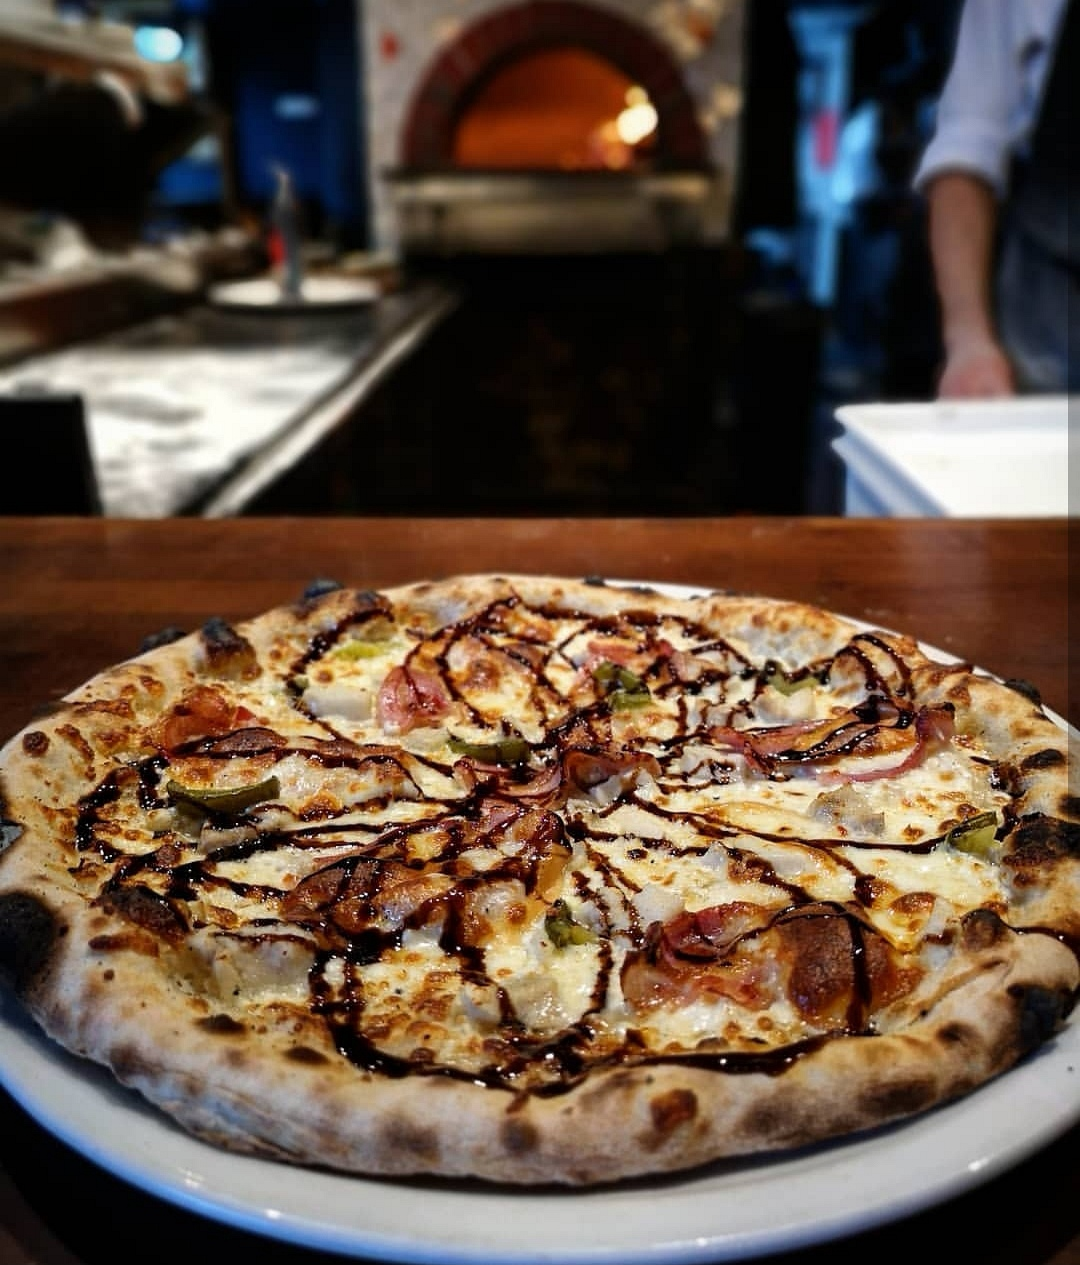 Showcasing the craft beer and wood oven pizza for the  Victory Cafe  in Toronto, ON.